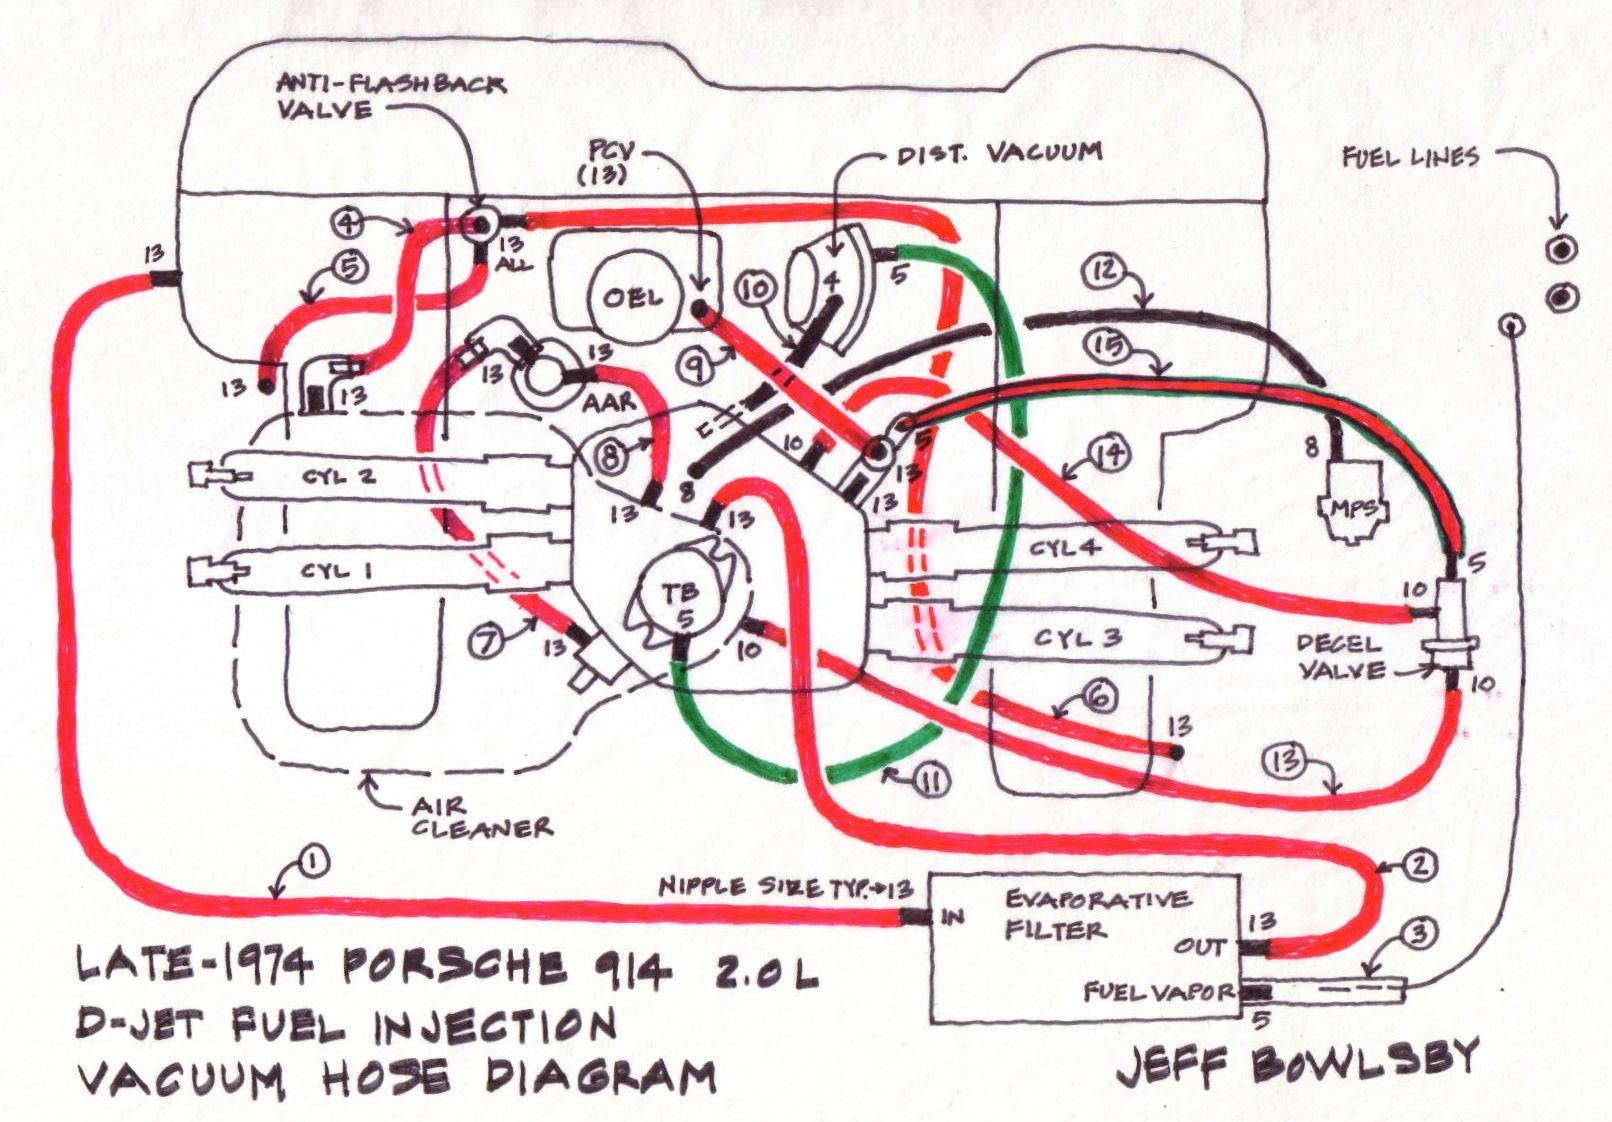 hight resolution of 1976 porsche 914 wiring diagram triumph spitfire wiring diagram wiring diagram elsalvadorla wiring diagram for 1976 attached image